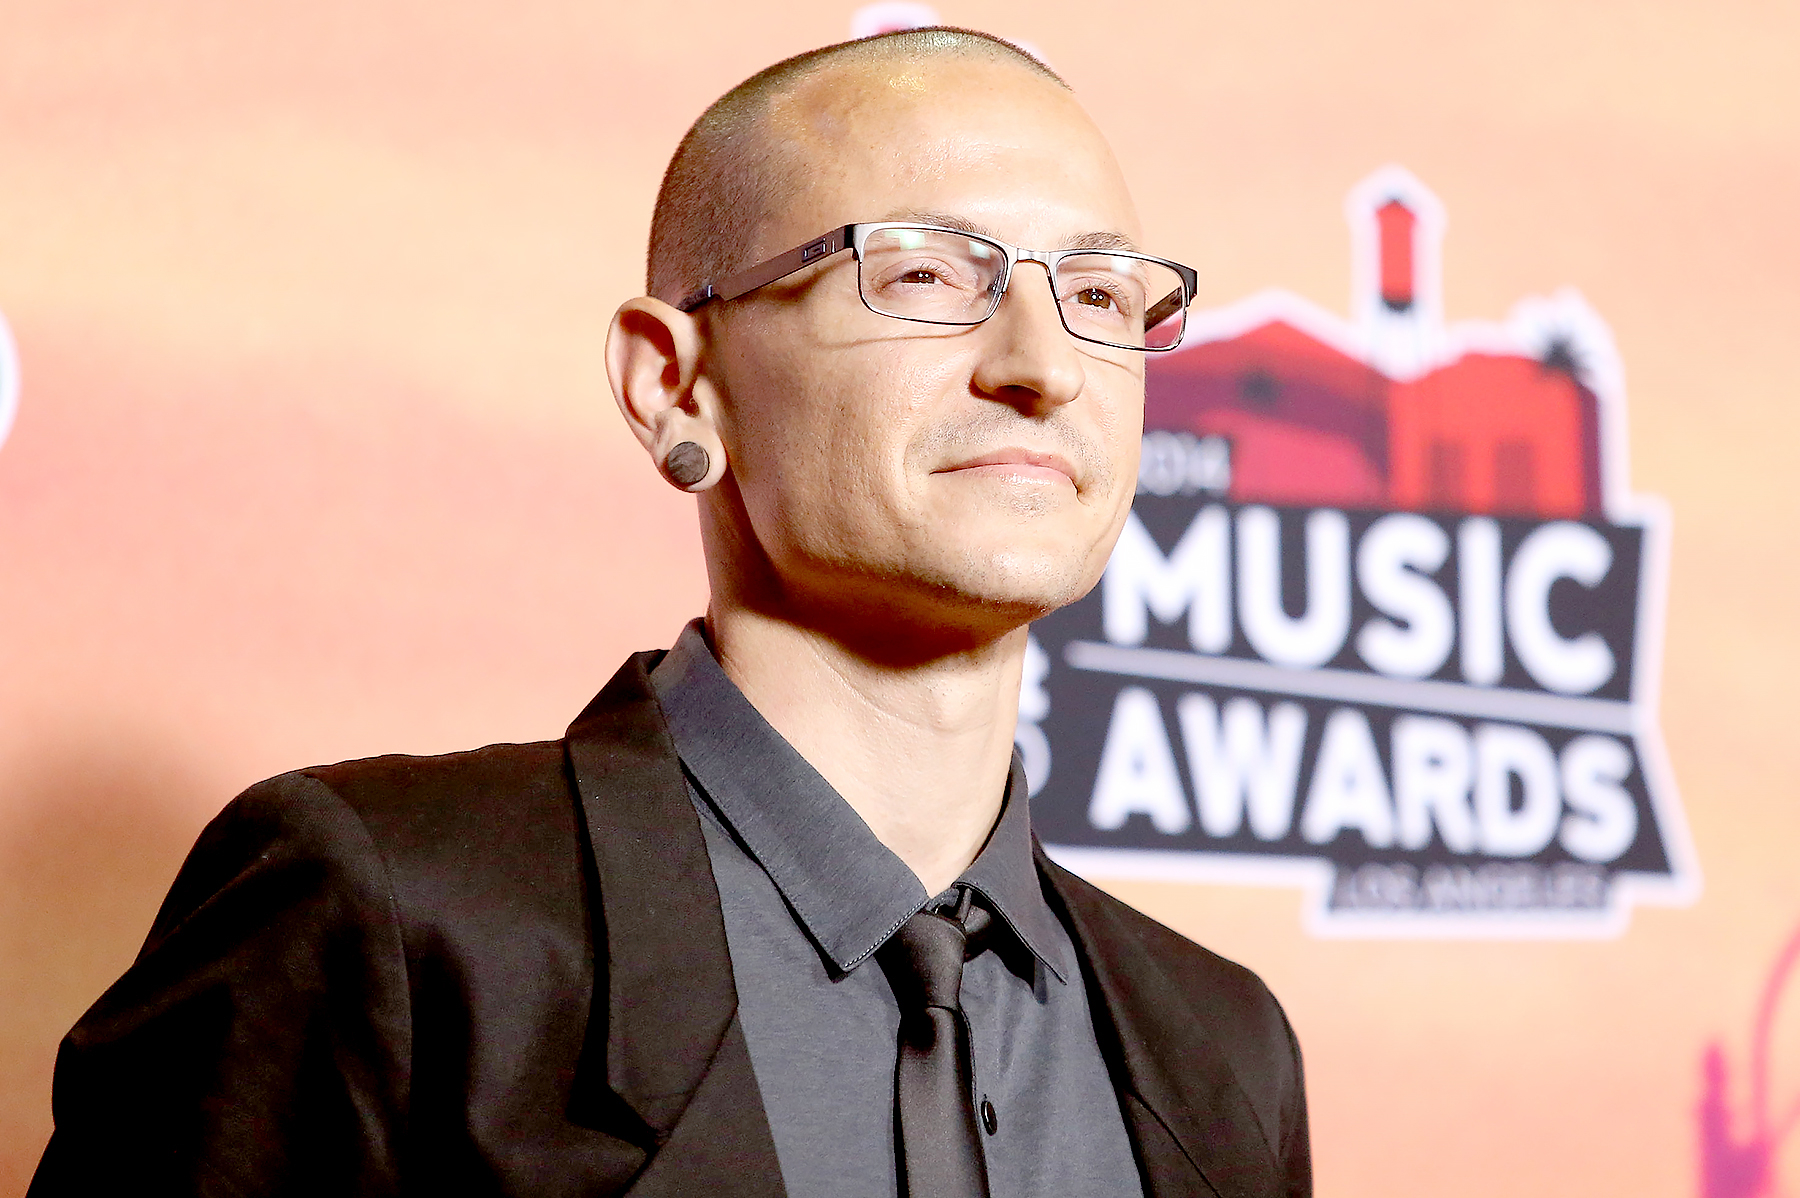 Chester Bennington attends the 2014 iHeartRadio Music Awards - press room held at The Shrine Auditorium on May 1, 2014 in Los Angeles, California.